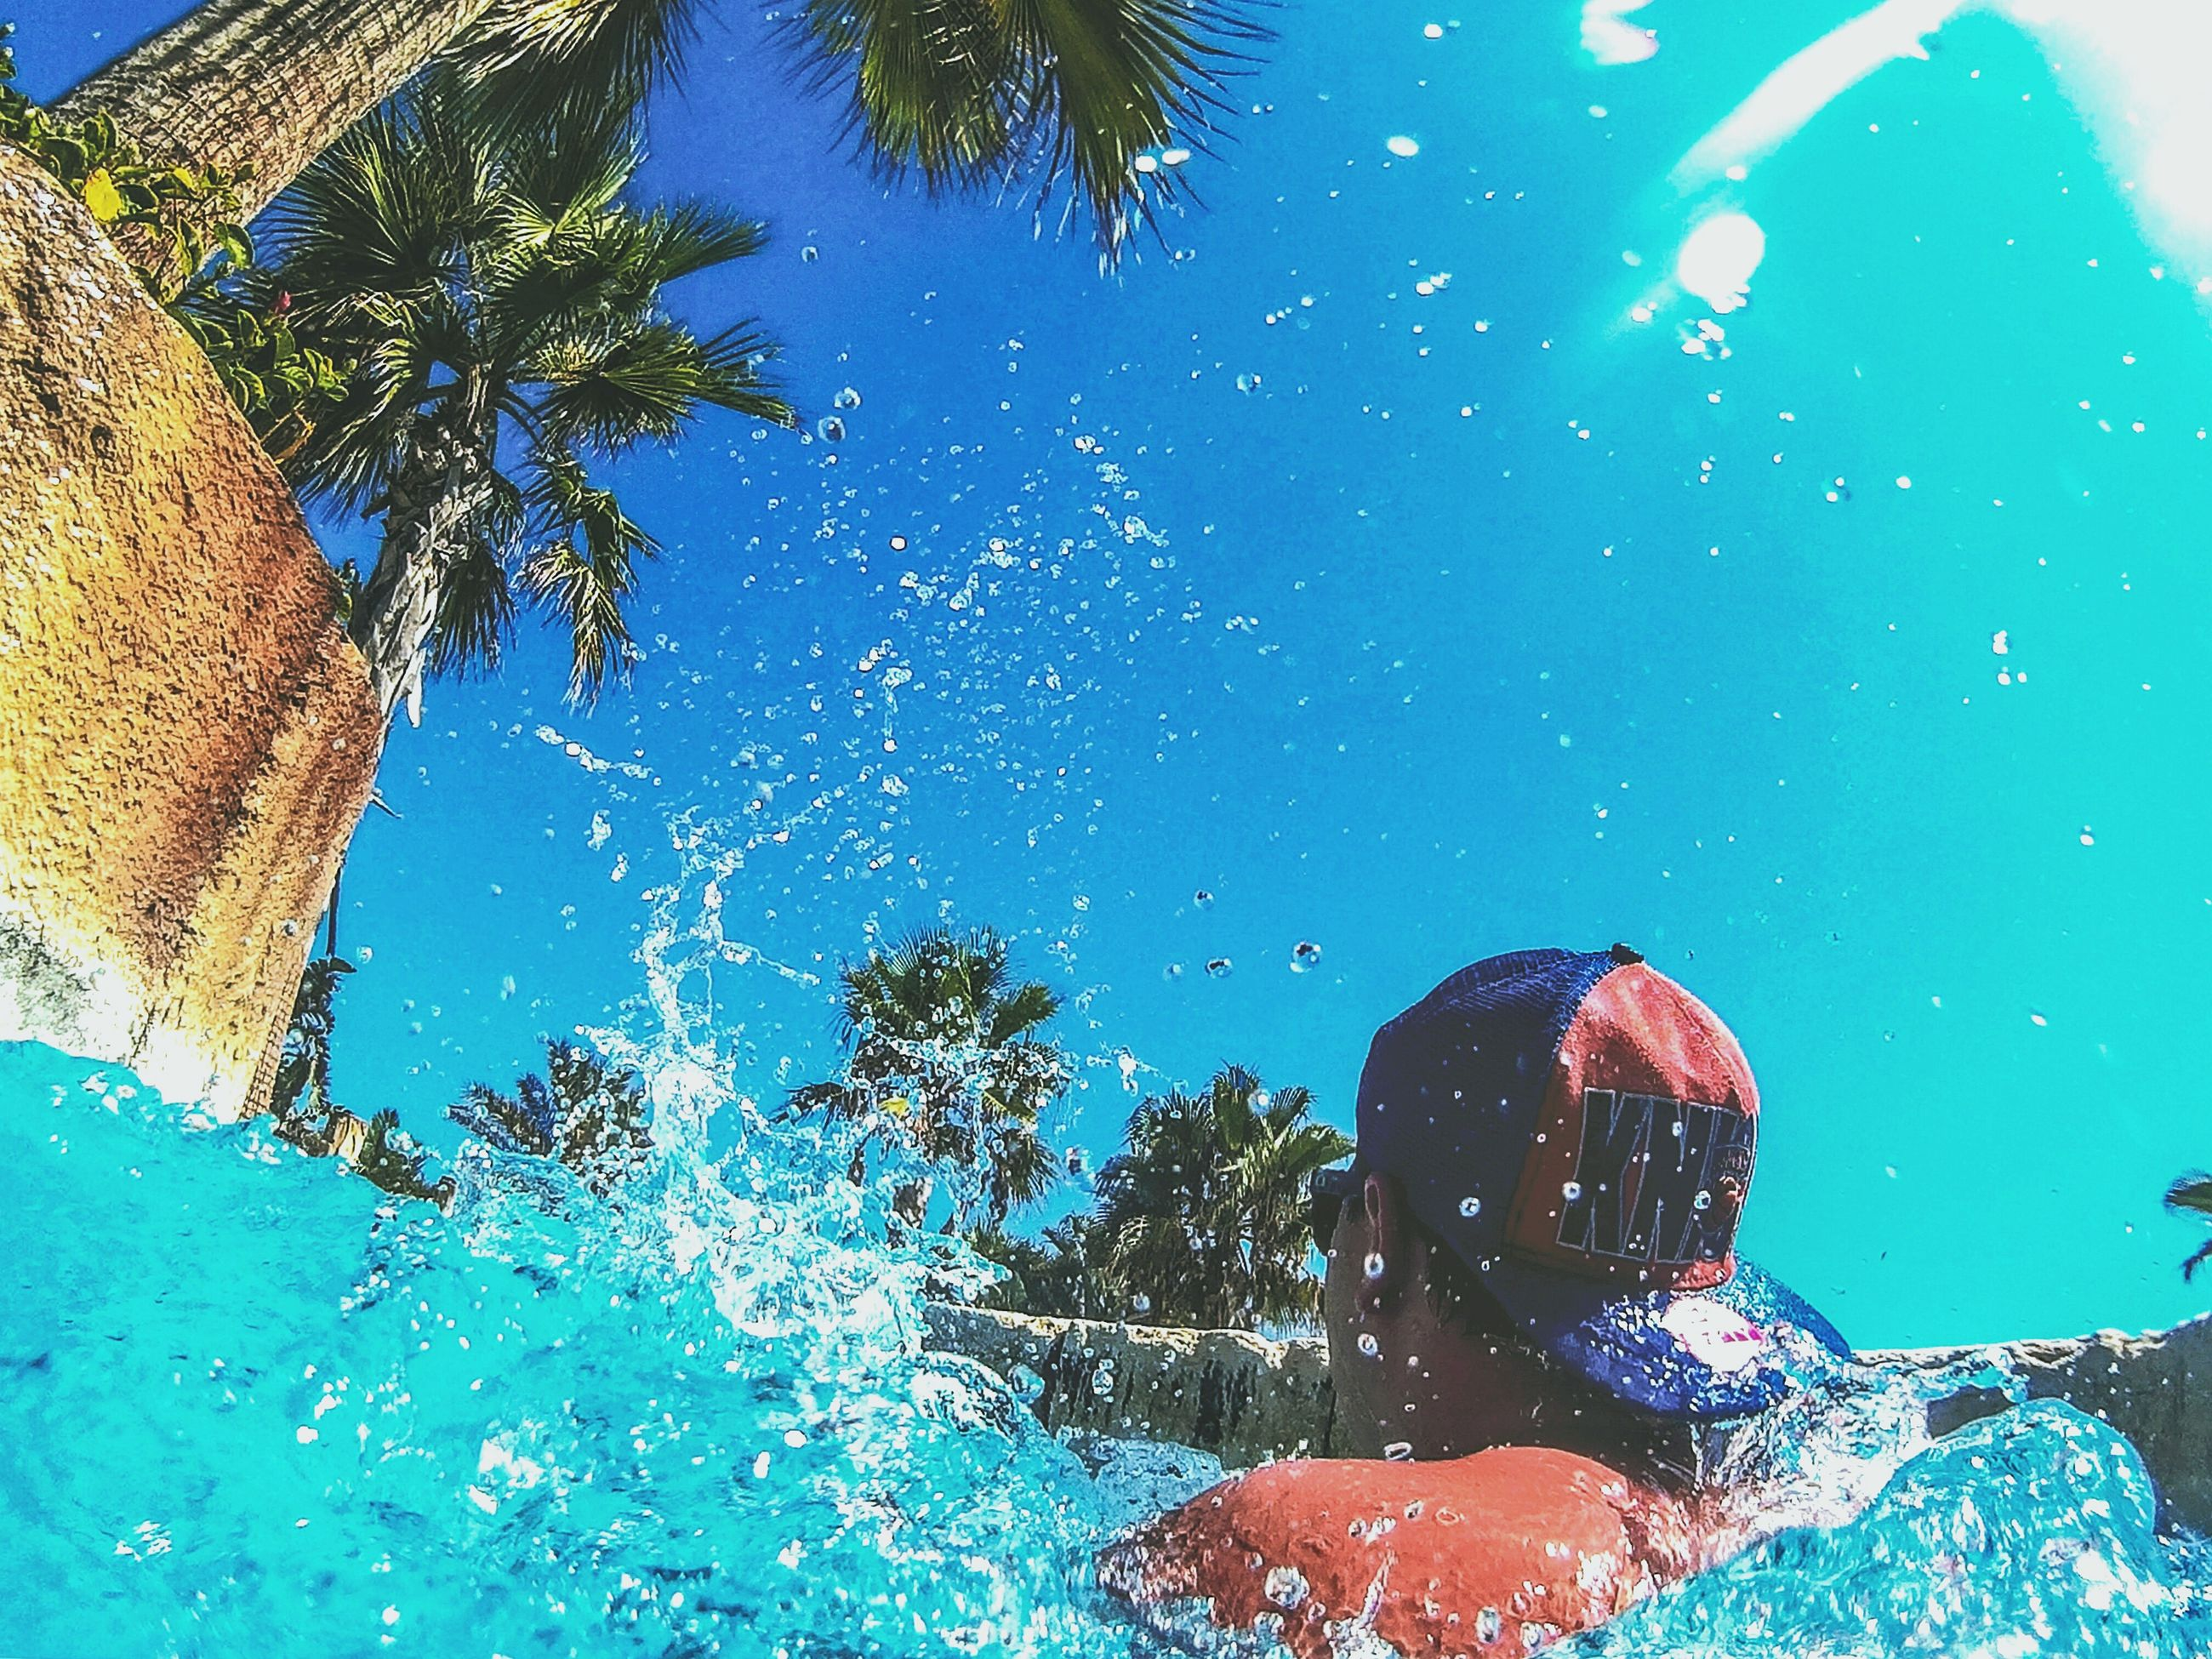 blue, building exterior, water, architecture, built structure, swimming pool, low angle view, clear sky, tree, outdoors, reflection, house, sky, turquoise colored, no people, day, underwater, residential building, nature, sunlight